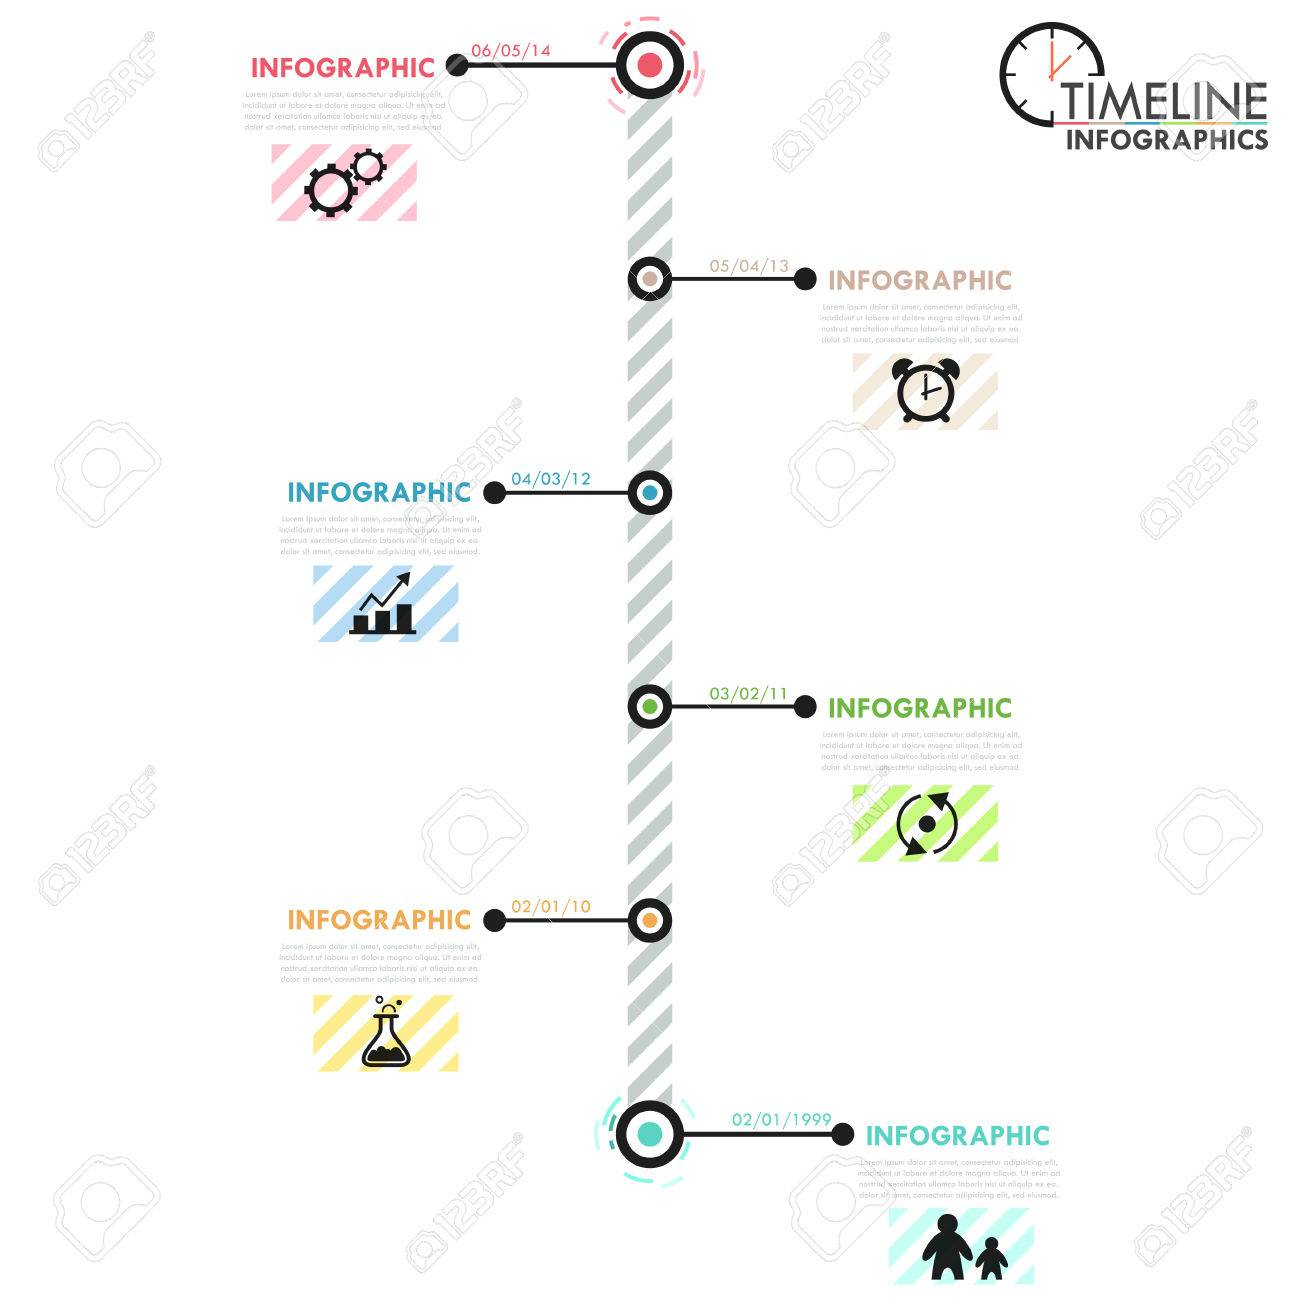 Minimal Infographics Timeline Template With Simple Shapes, Circles ...